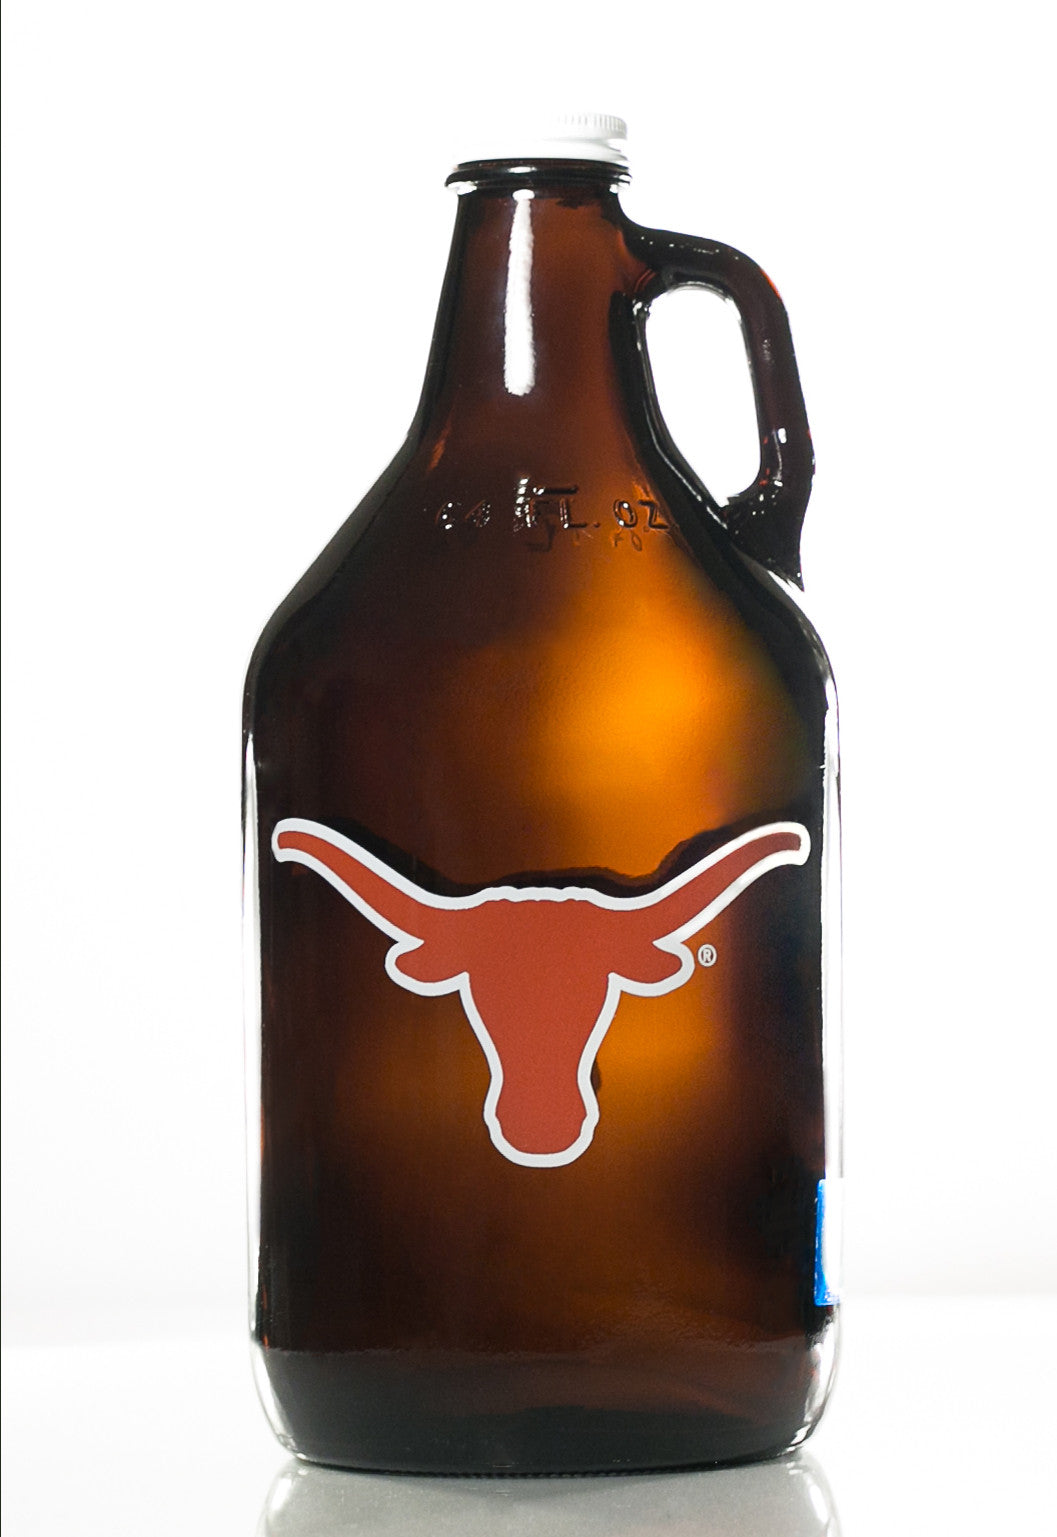 64 oz. Texas Longhorns Growler (Officially Licensed) - Haüs Of Growlers